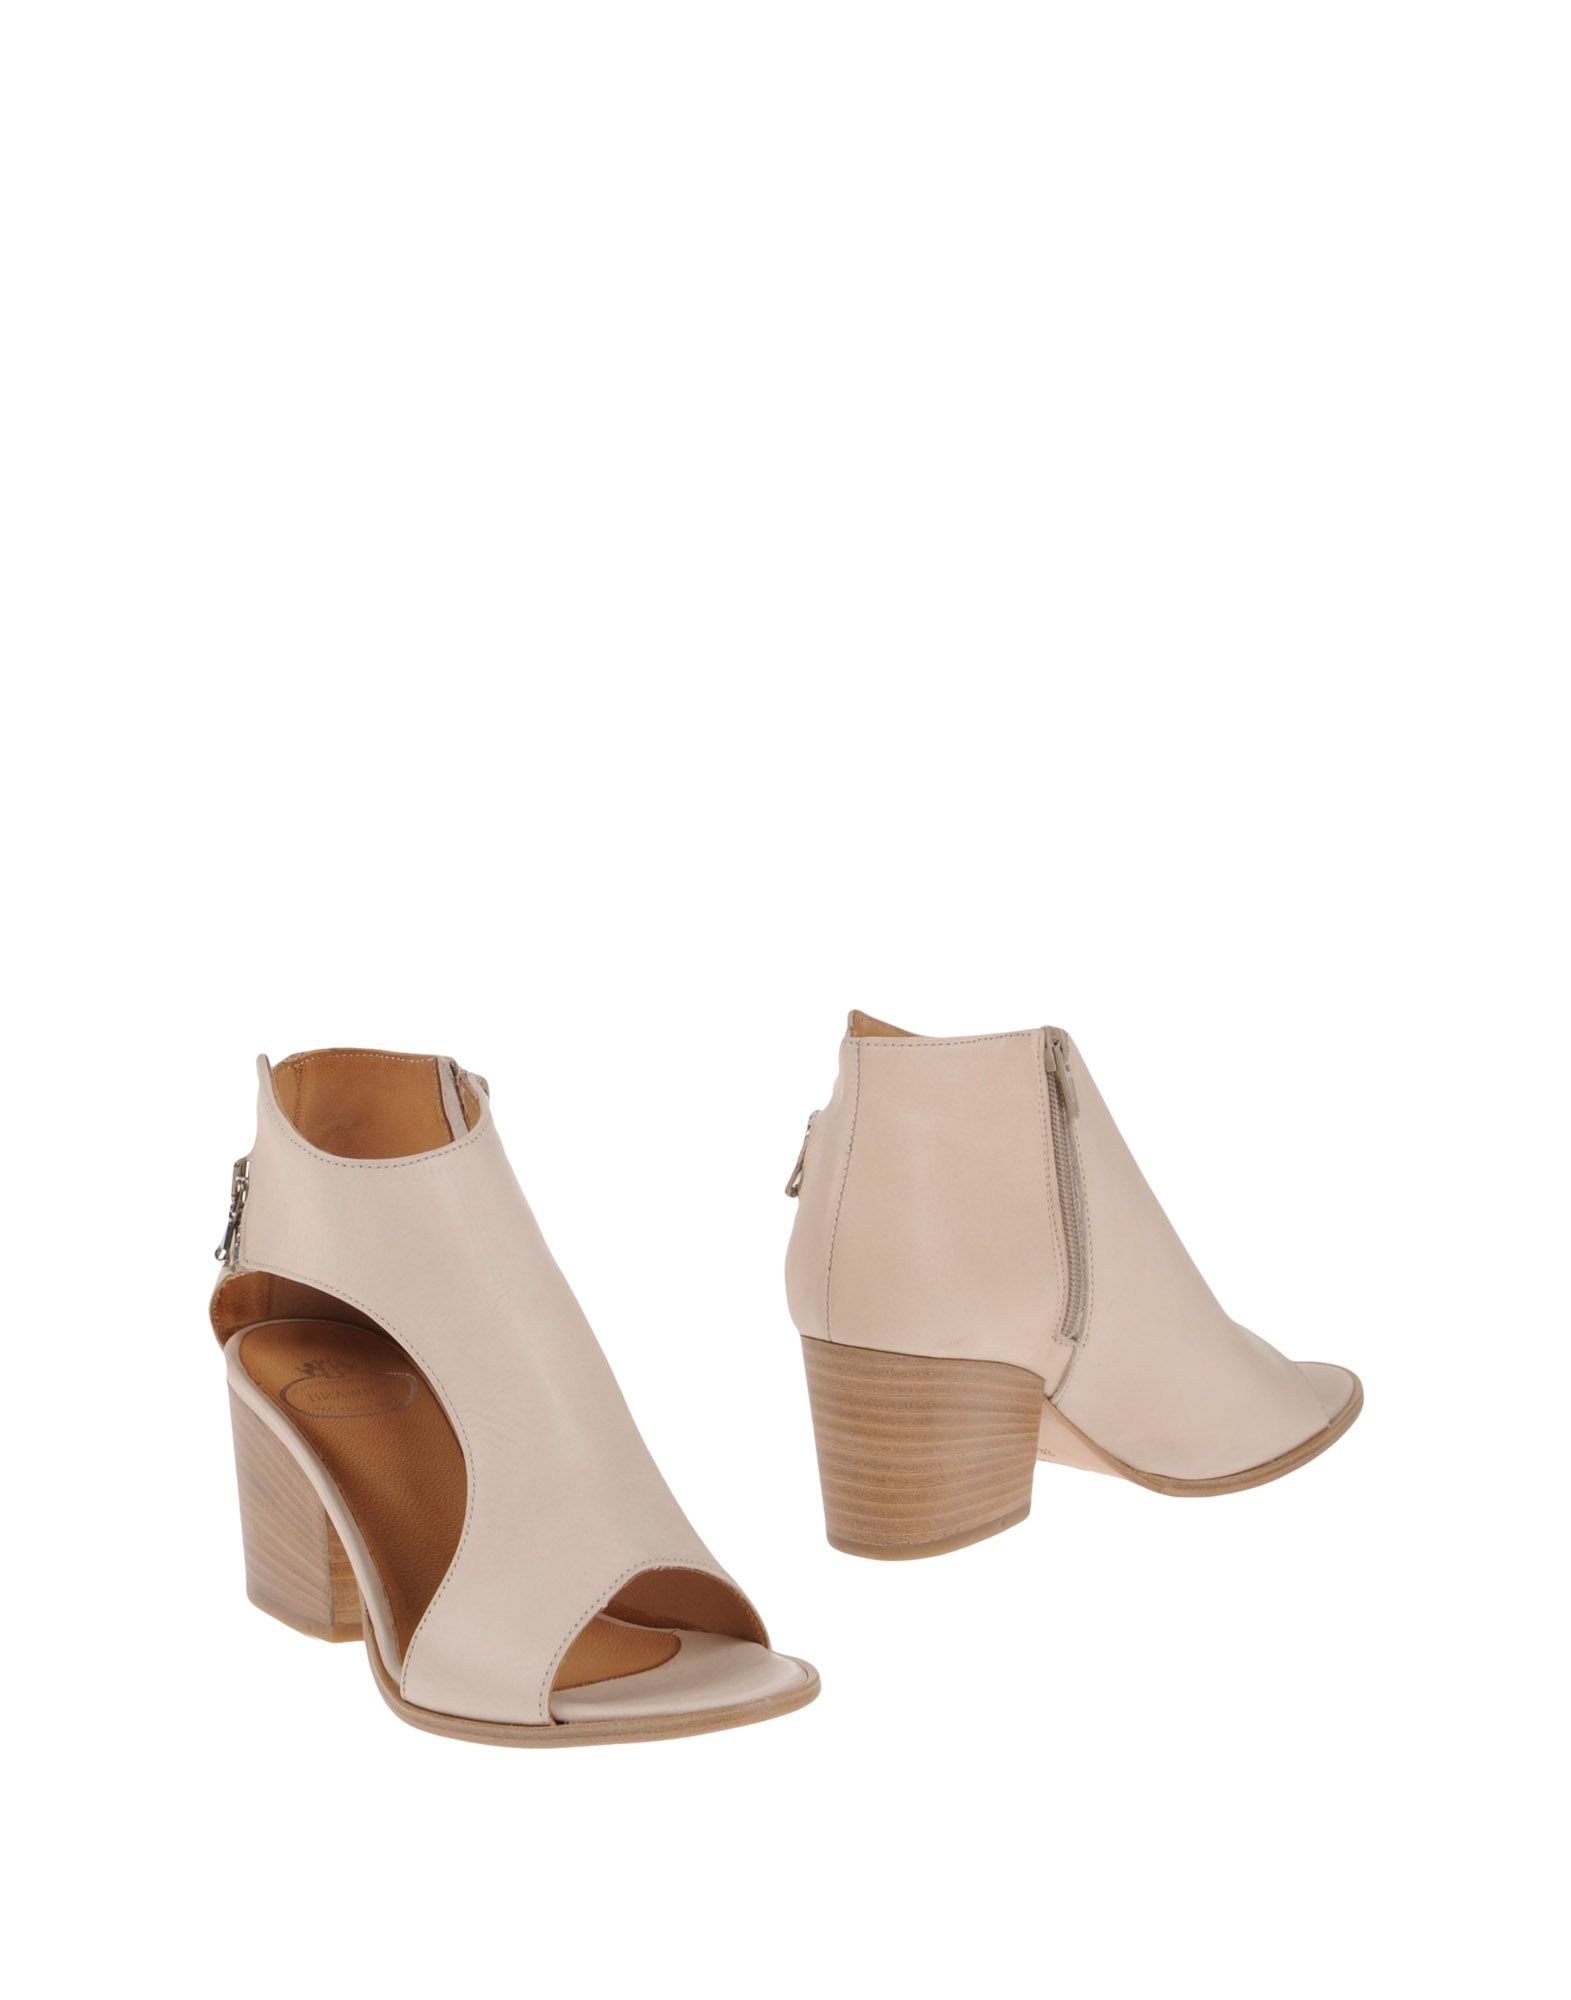 Brawn's Ankle Boot - Women Brawn's Ankle Ankle Ankle Boots online on  United Kingdom - 11175703EK ddc78d